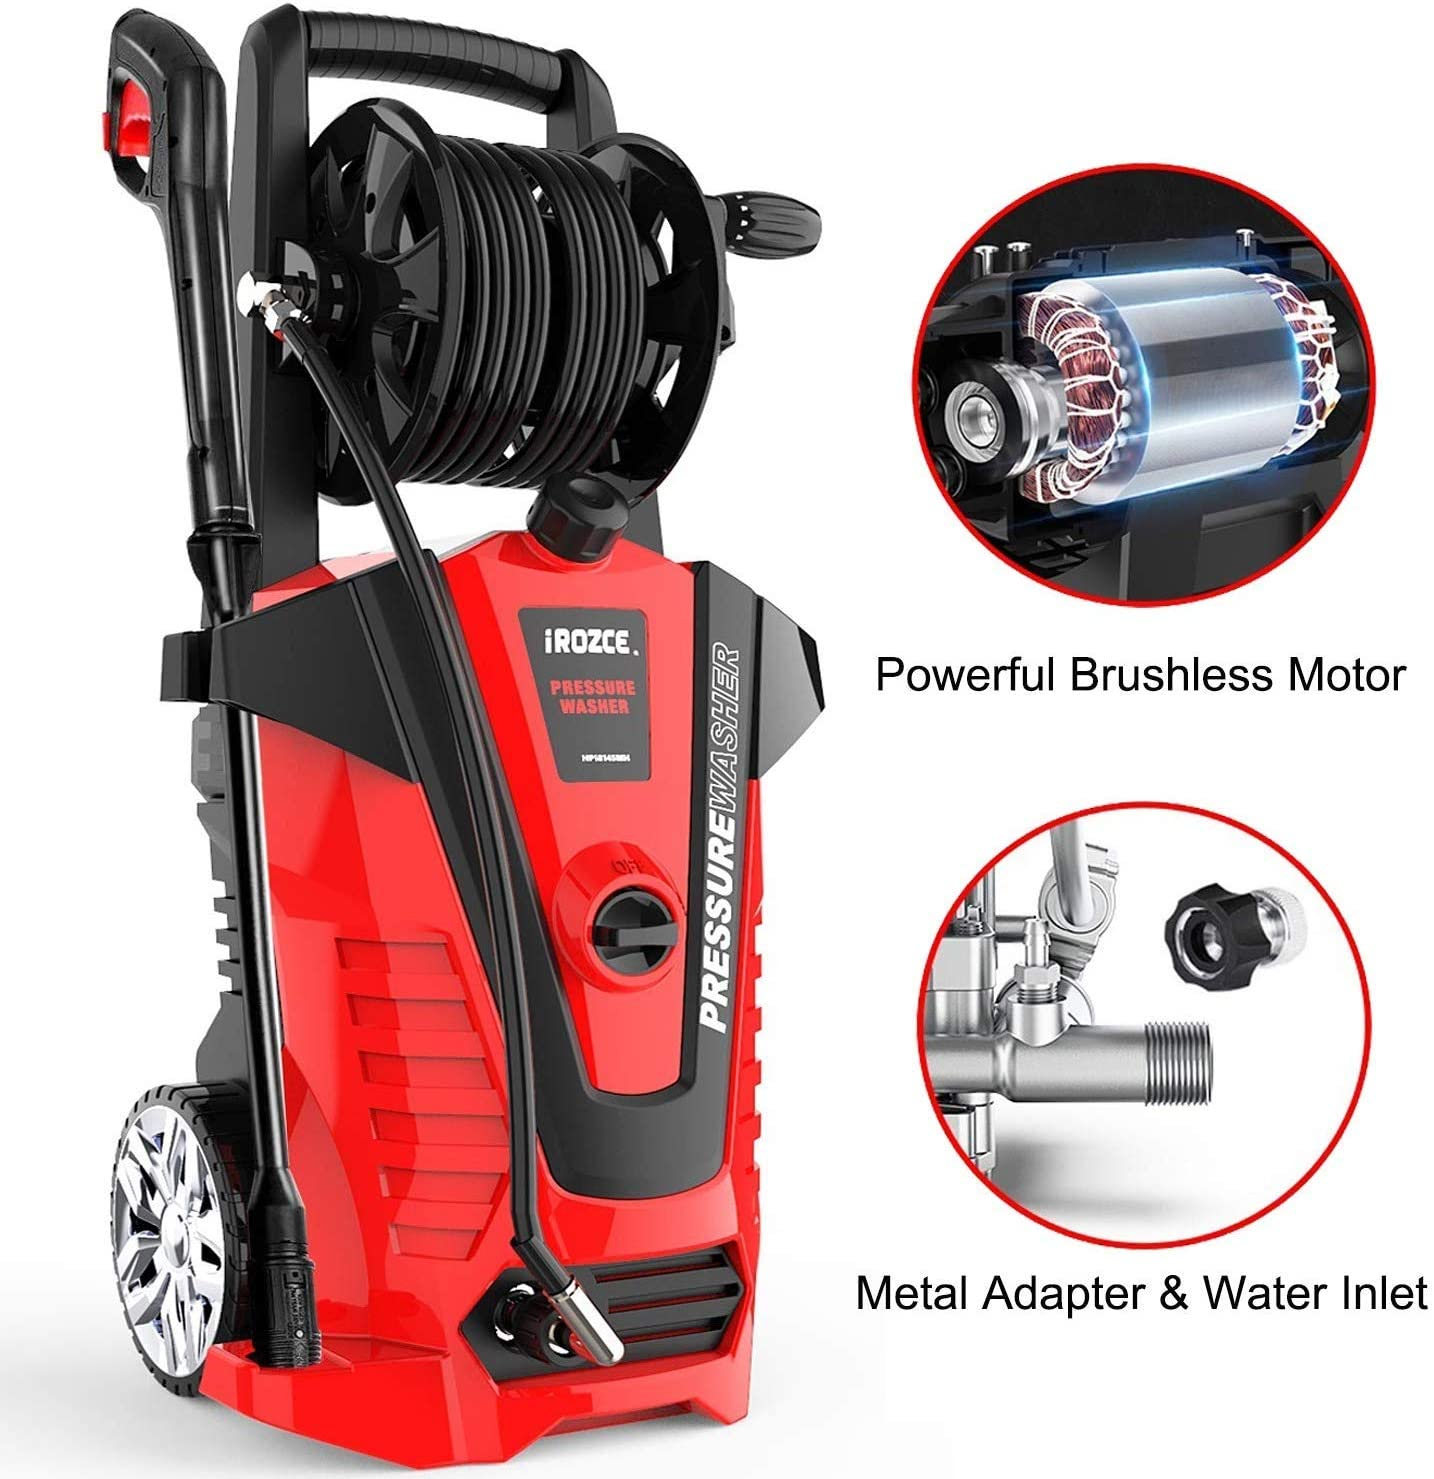 iRozce High Pressure Washers, 3045PSI 2.3GPM Max Electric Power Washer with Hose Reel/Adjustable Nozzles/On-Board Detergent Tank for Concrete, Deck, Patio Furniture, Car Washing